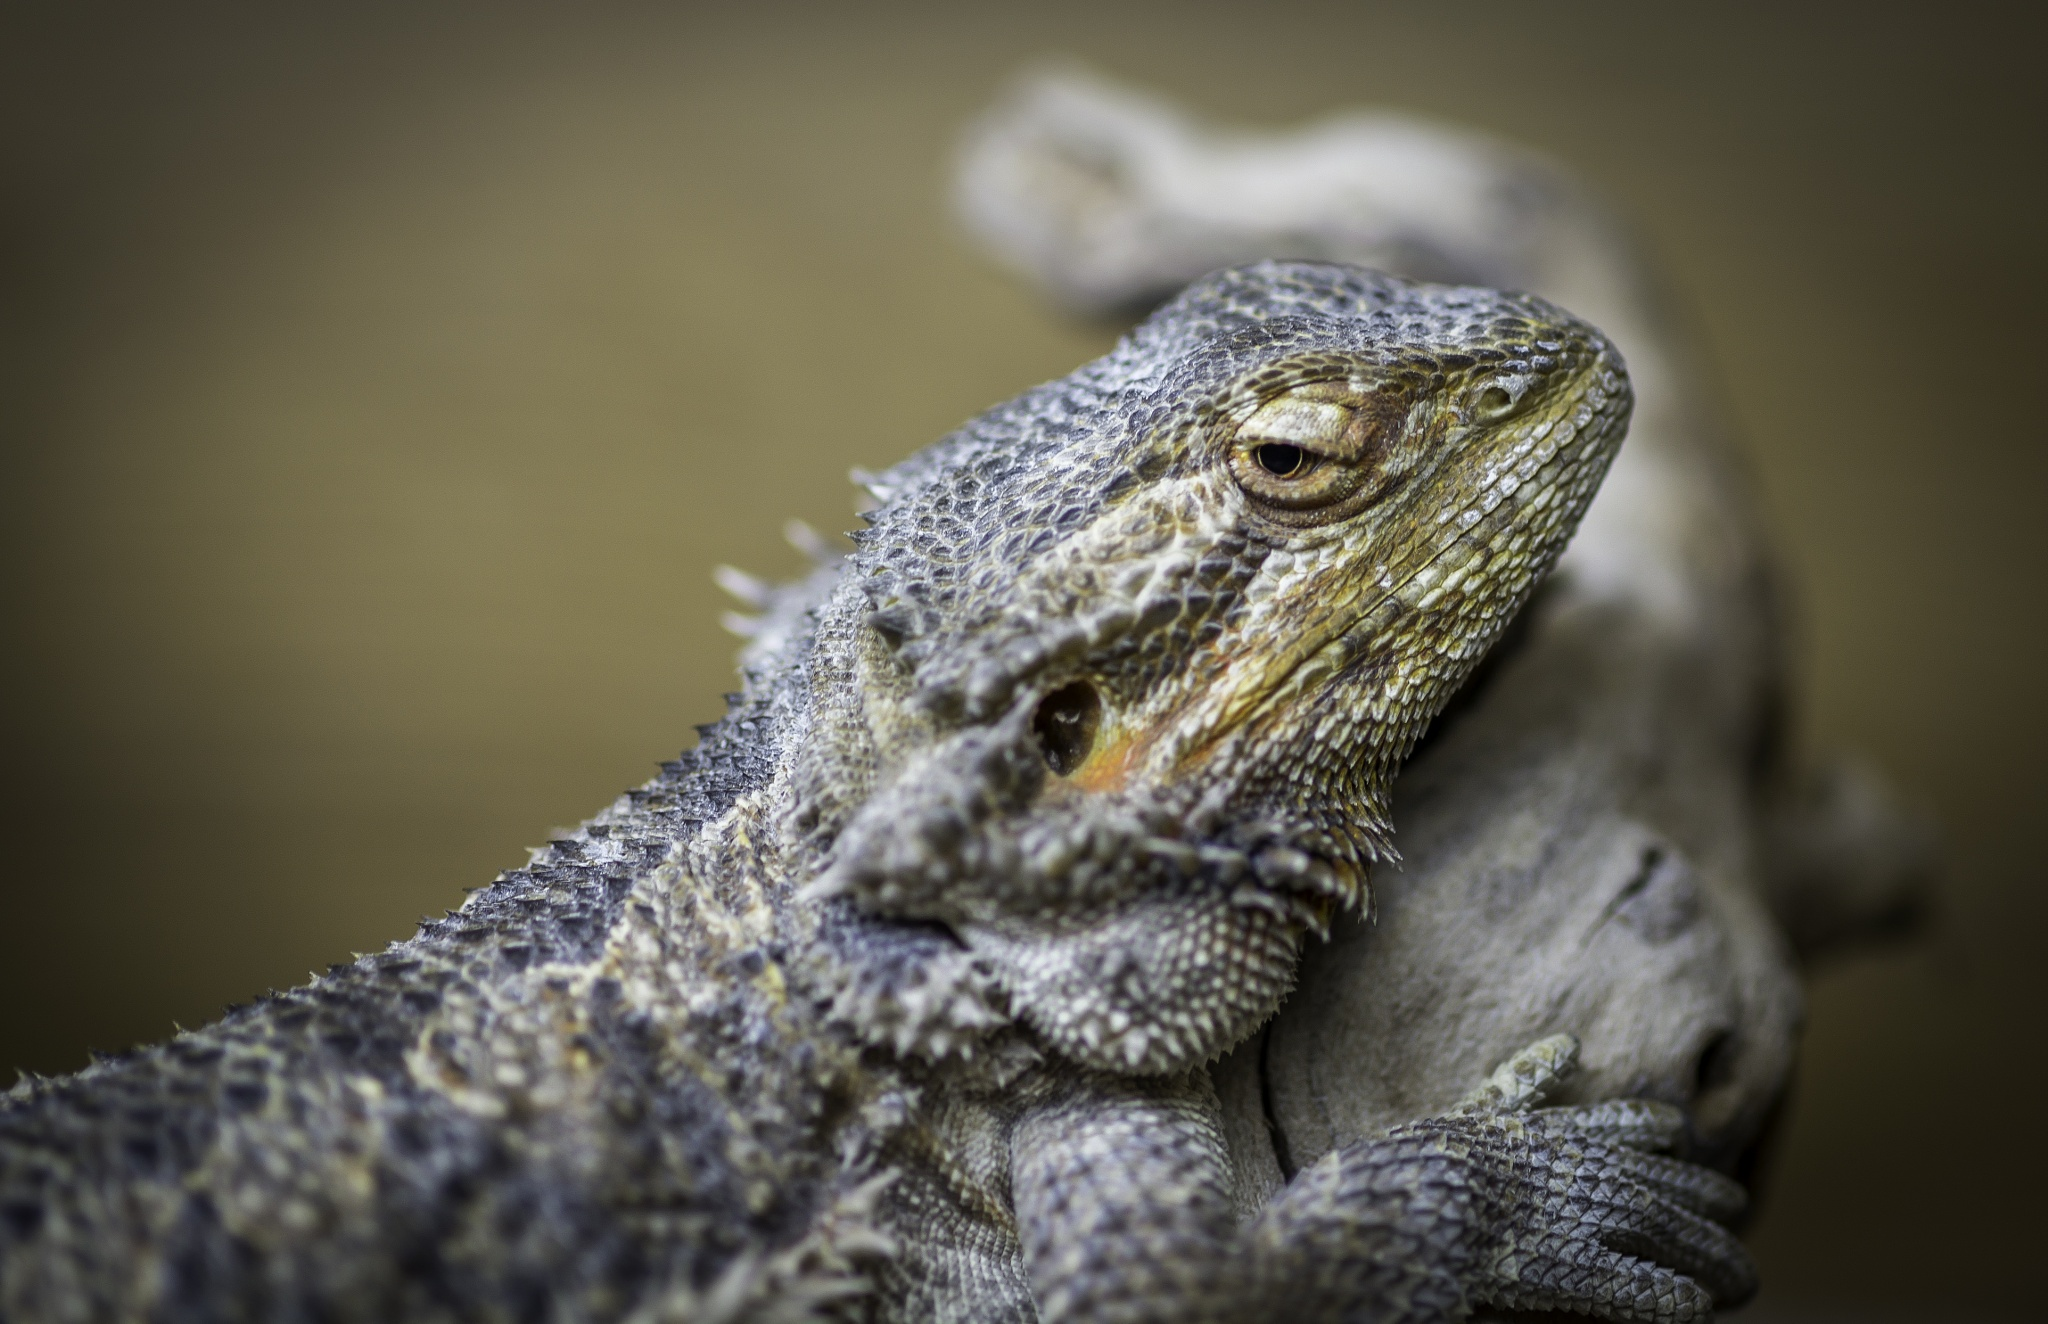 Bearded dragon by D.W.Images